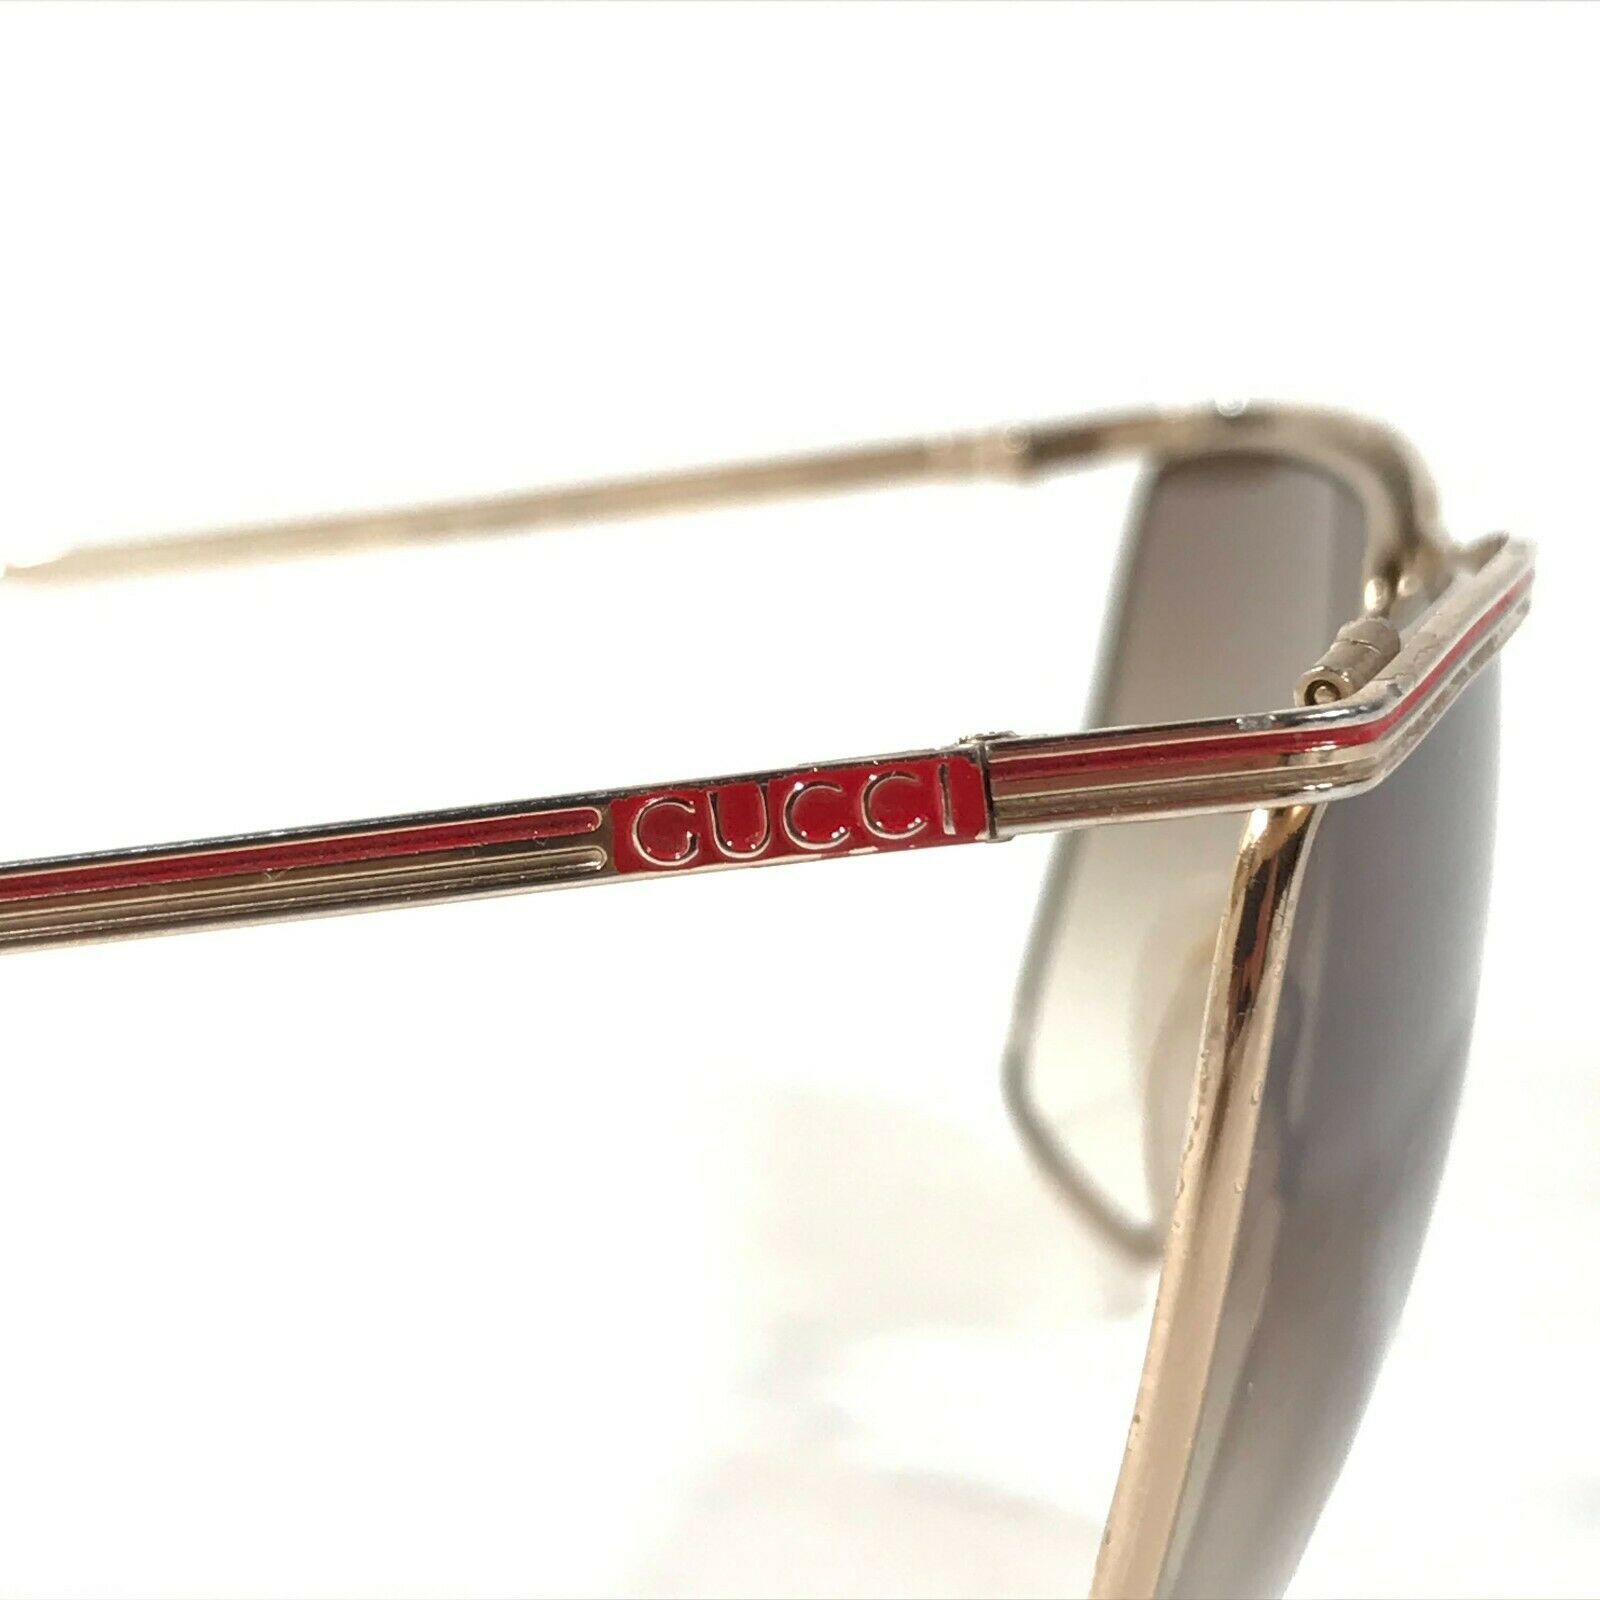 Vintage Gucci Sunglasses 70s 80s Gold Red Logos B… - image 4